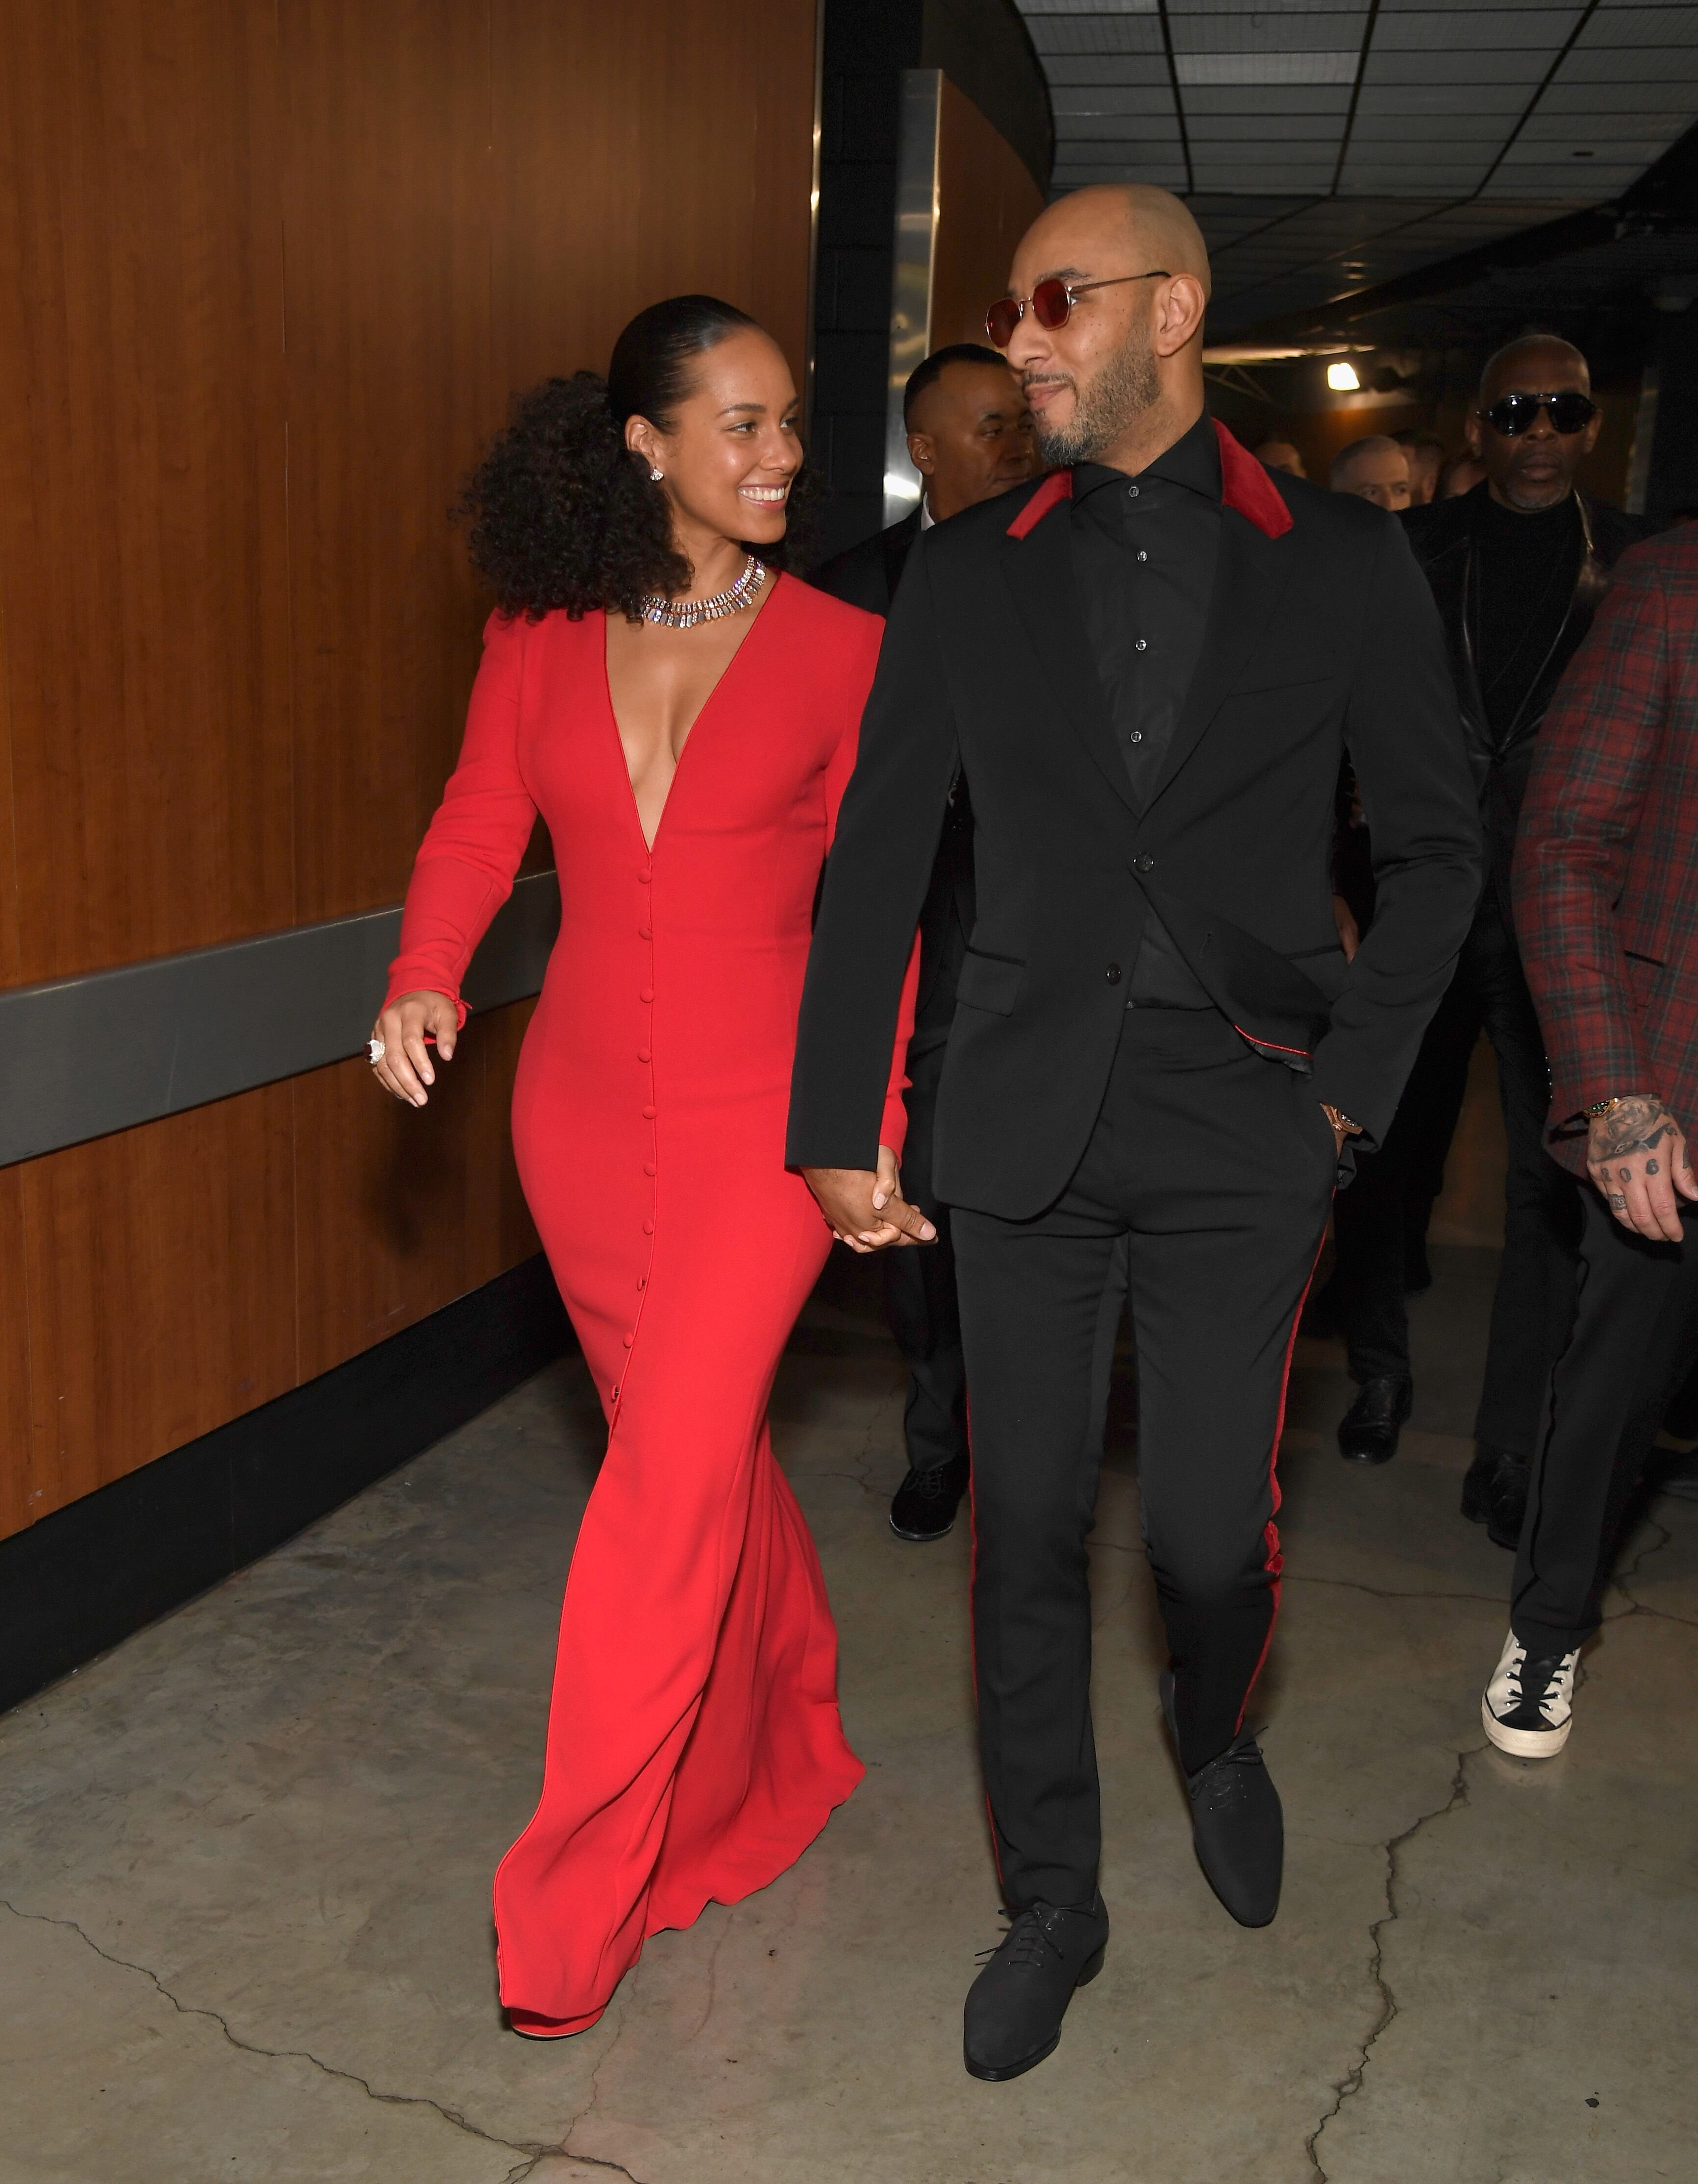 Alicia Keys and husband rapper Swizz Beatz at the 61st Annual GRAMMY Awards in 2019   Source: Getty Images